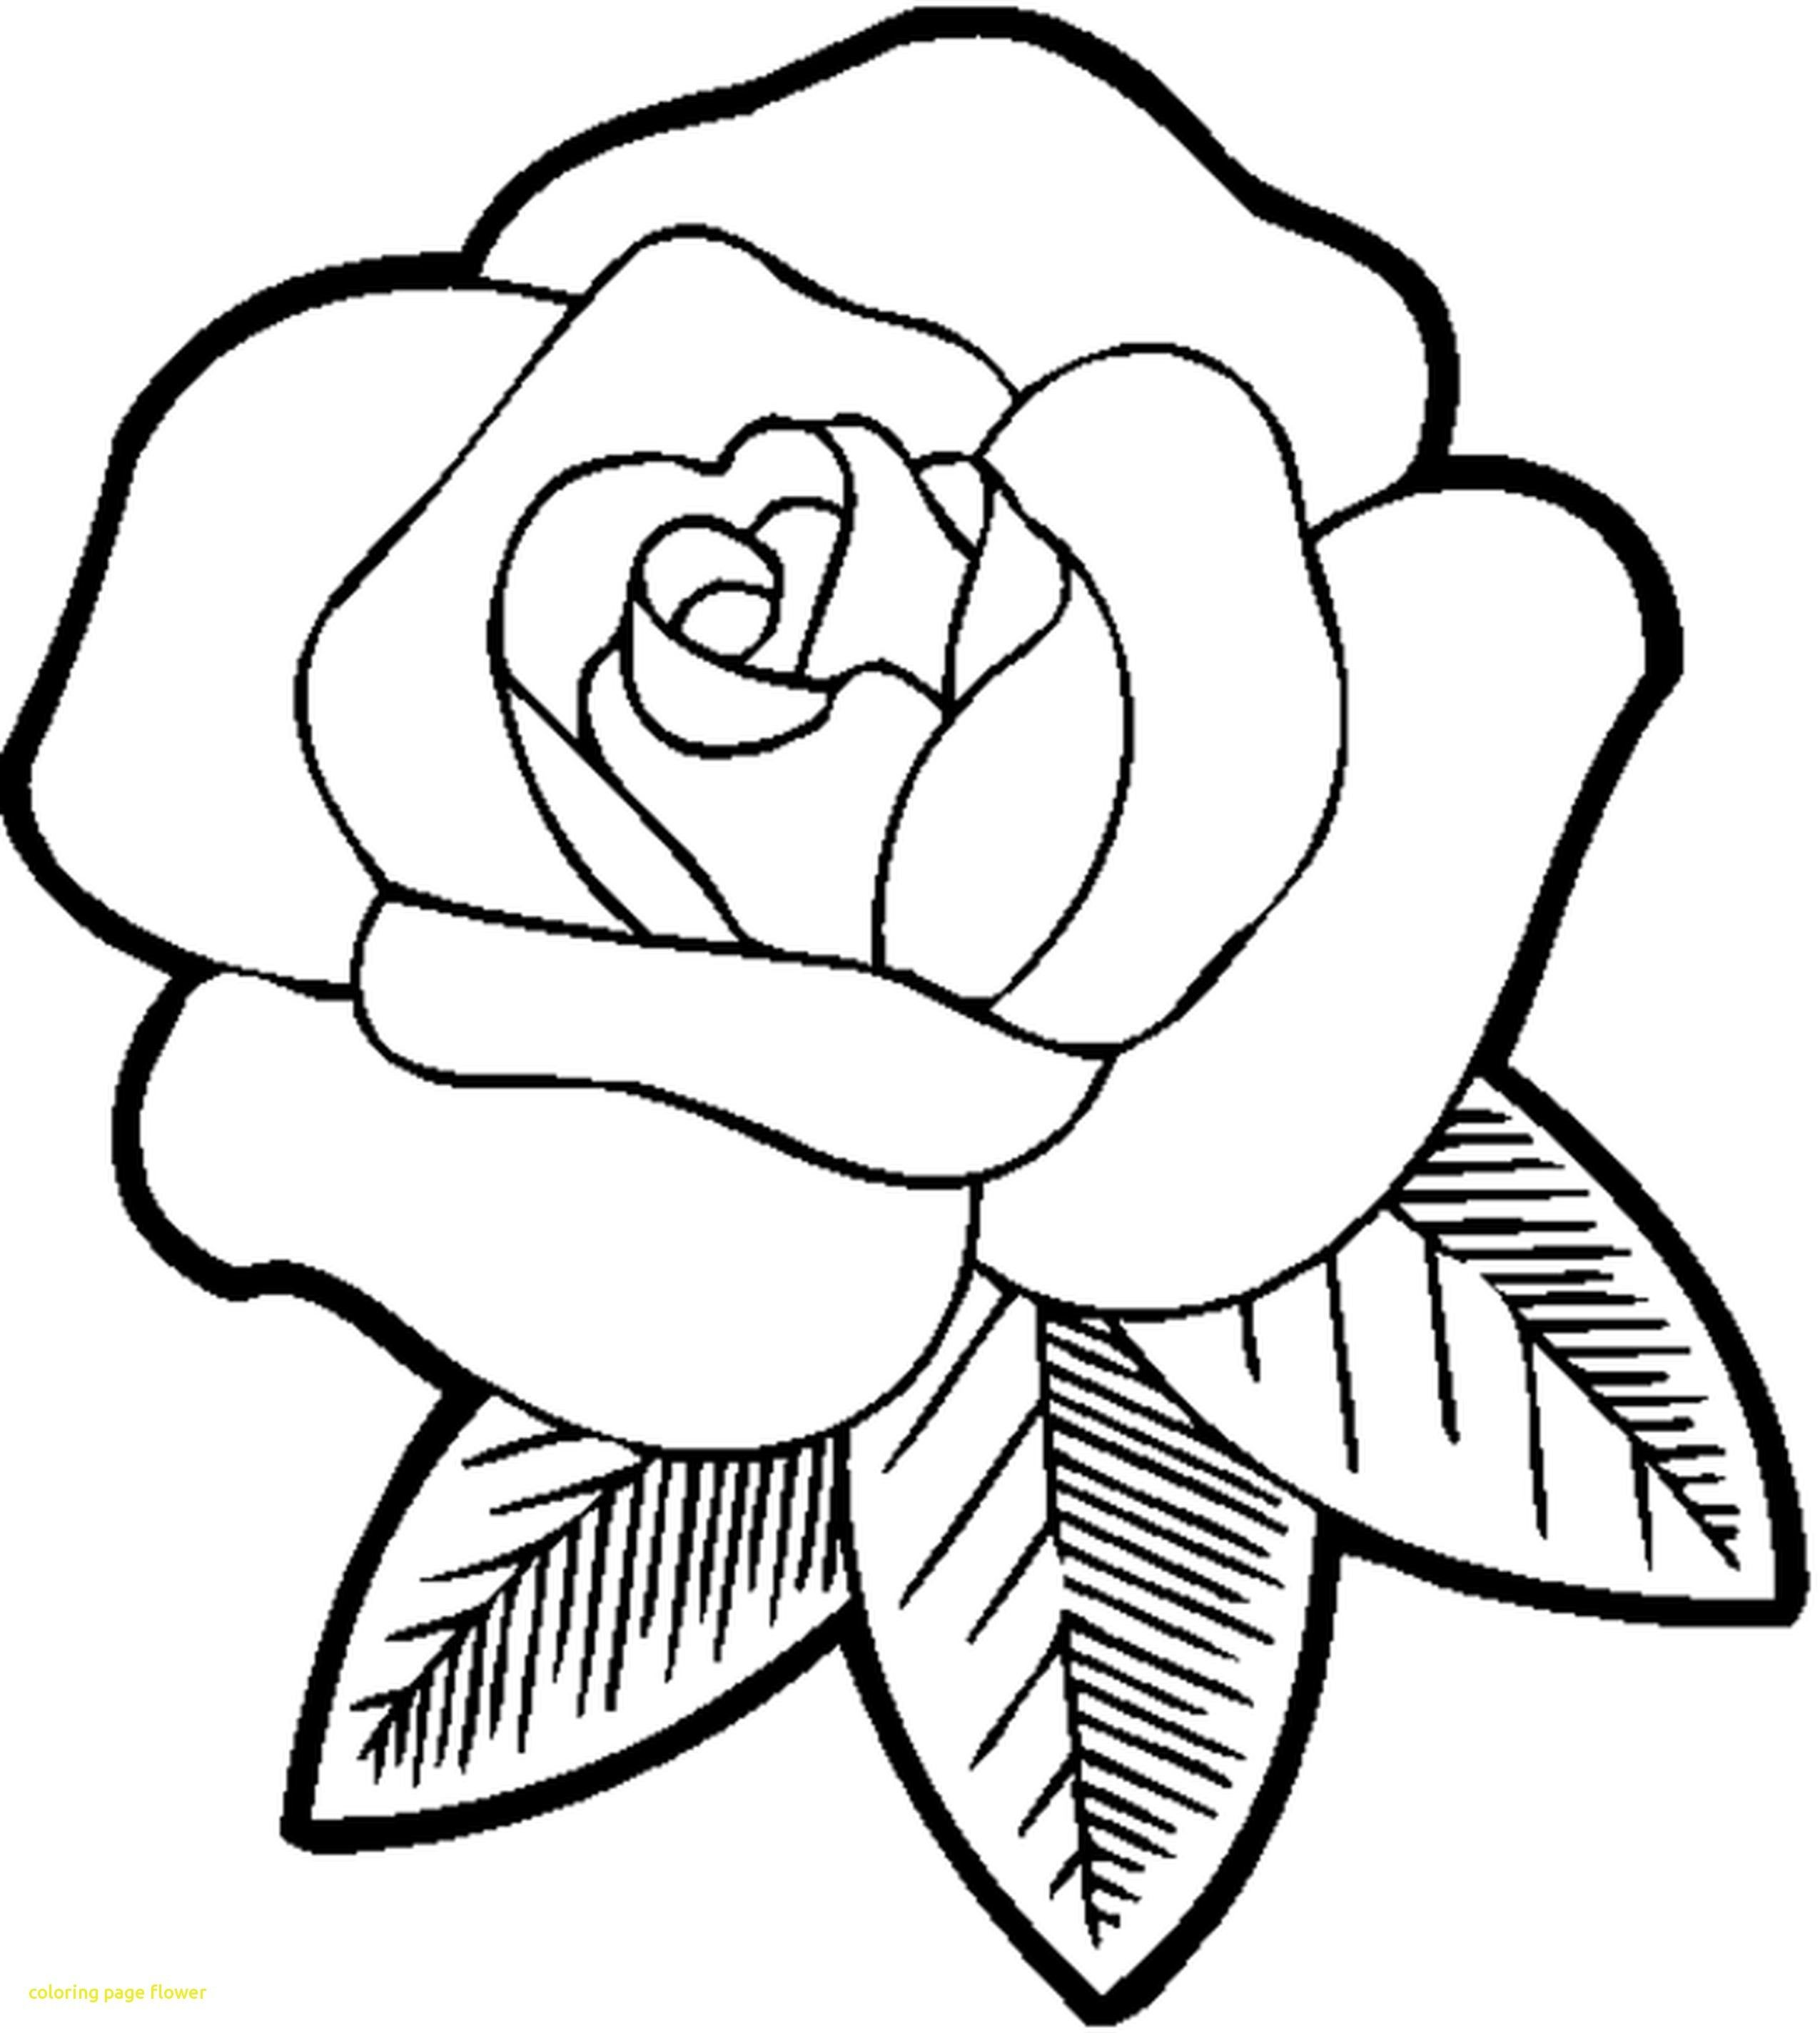 Coloring Sheets Flowers Printables Fresh Free Printable Flower Rose Coloring Pages Easy Coloring Pages Cute Coloring Pages